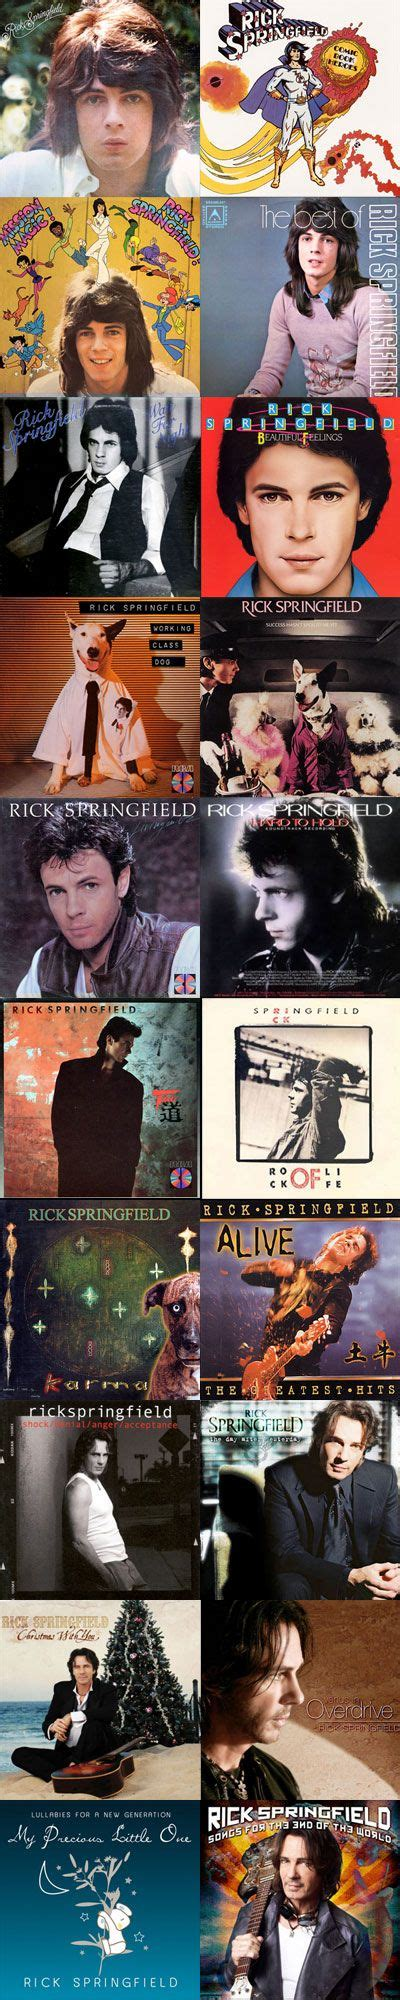 Rick Springfield The Encore Collection Cd rick springfield album covers images